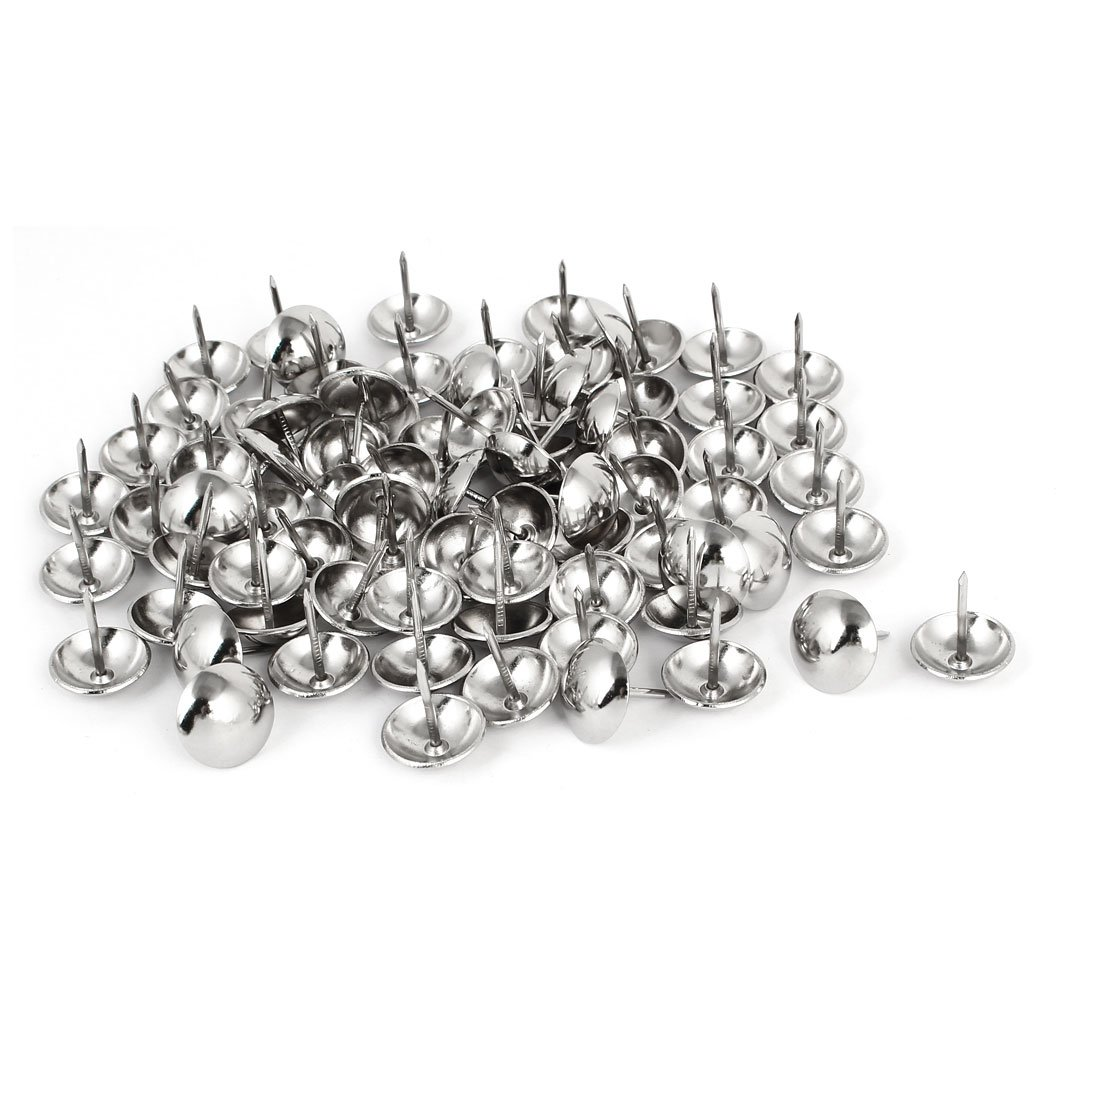 uxcell 19mm Dia Stainless Steel Upholstery Tack Nail Decorative Thumbtack 80PCS